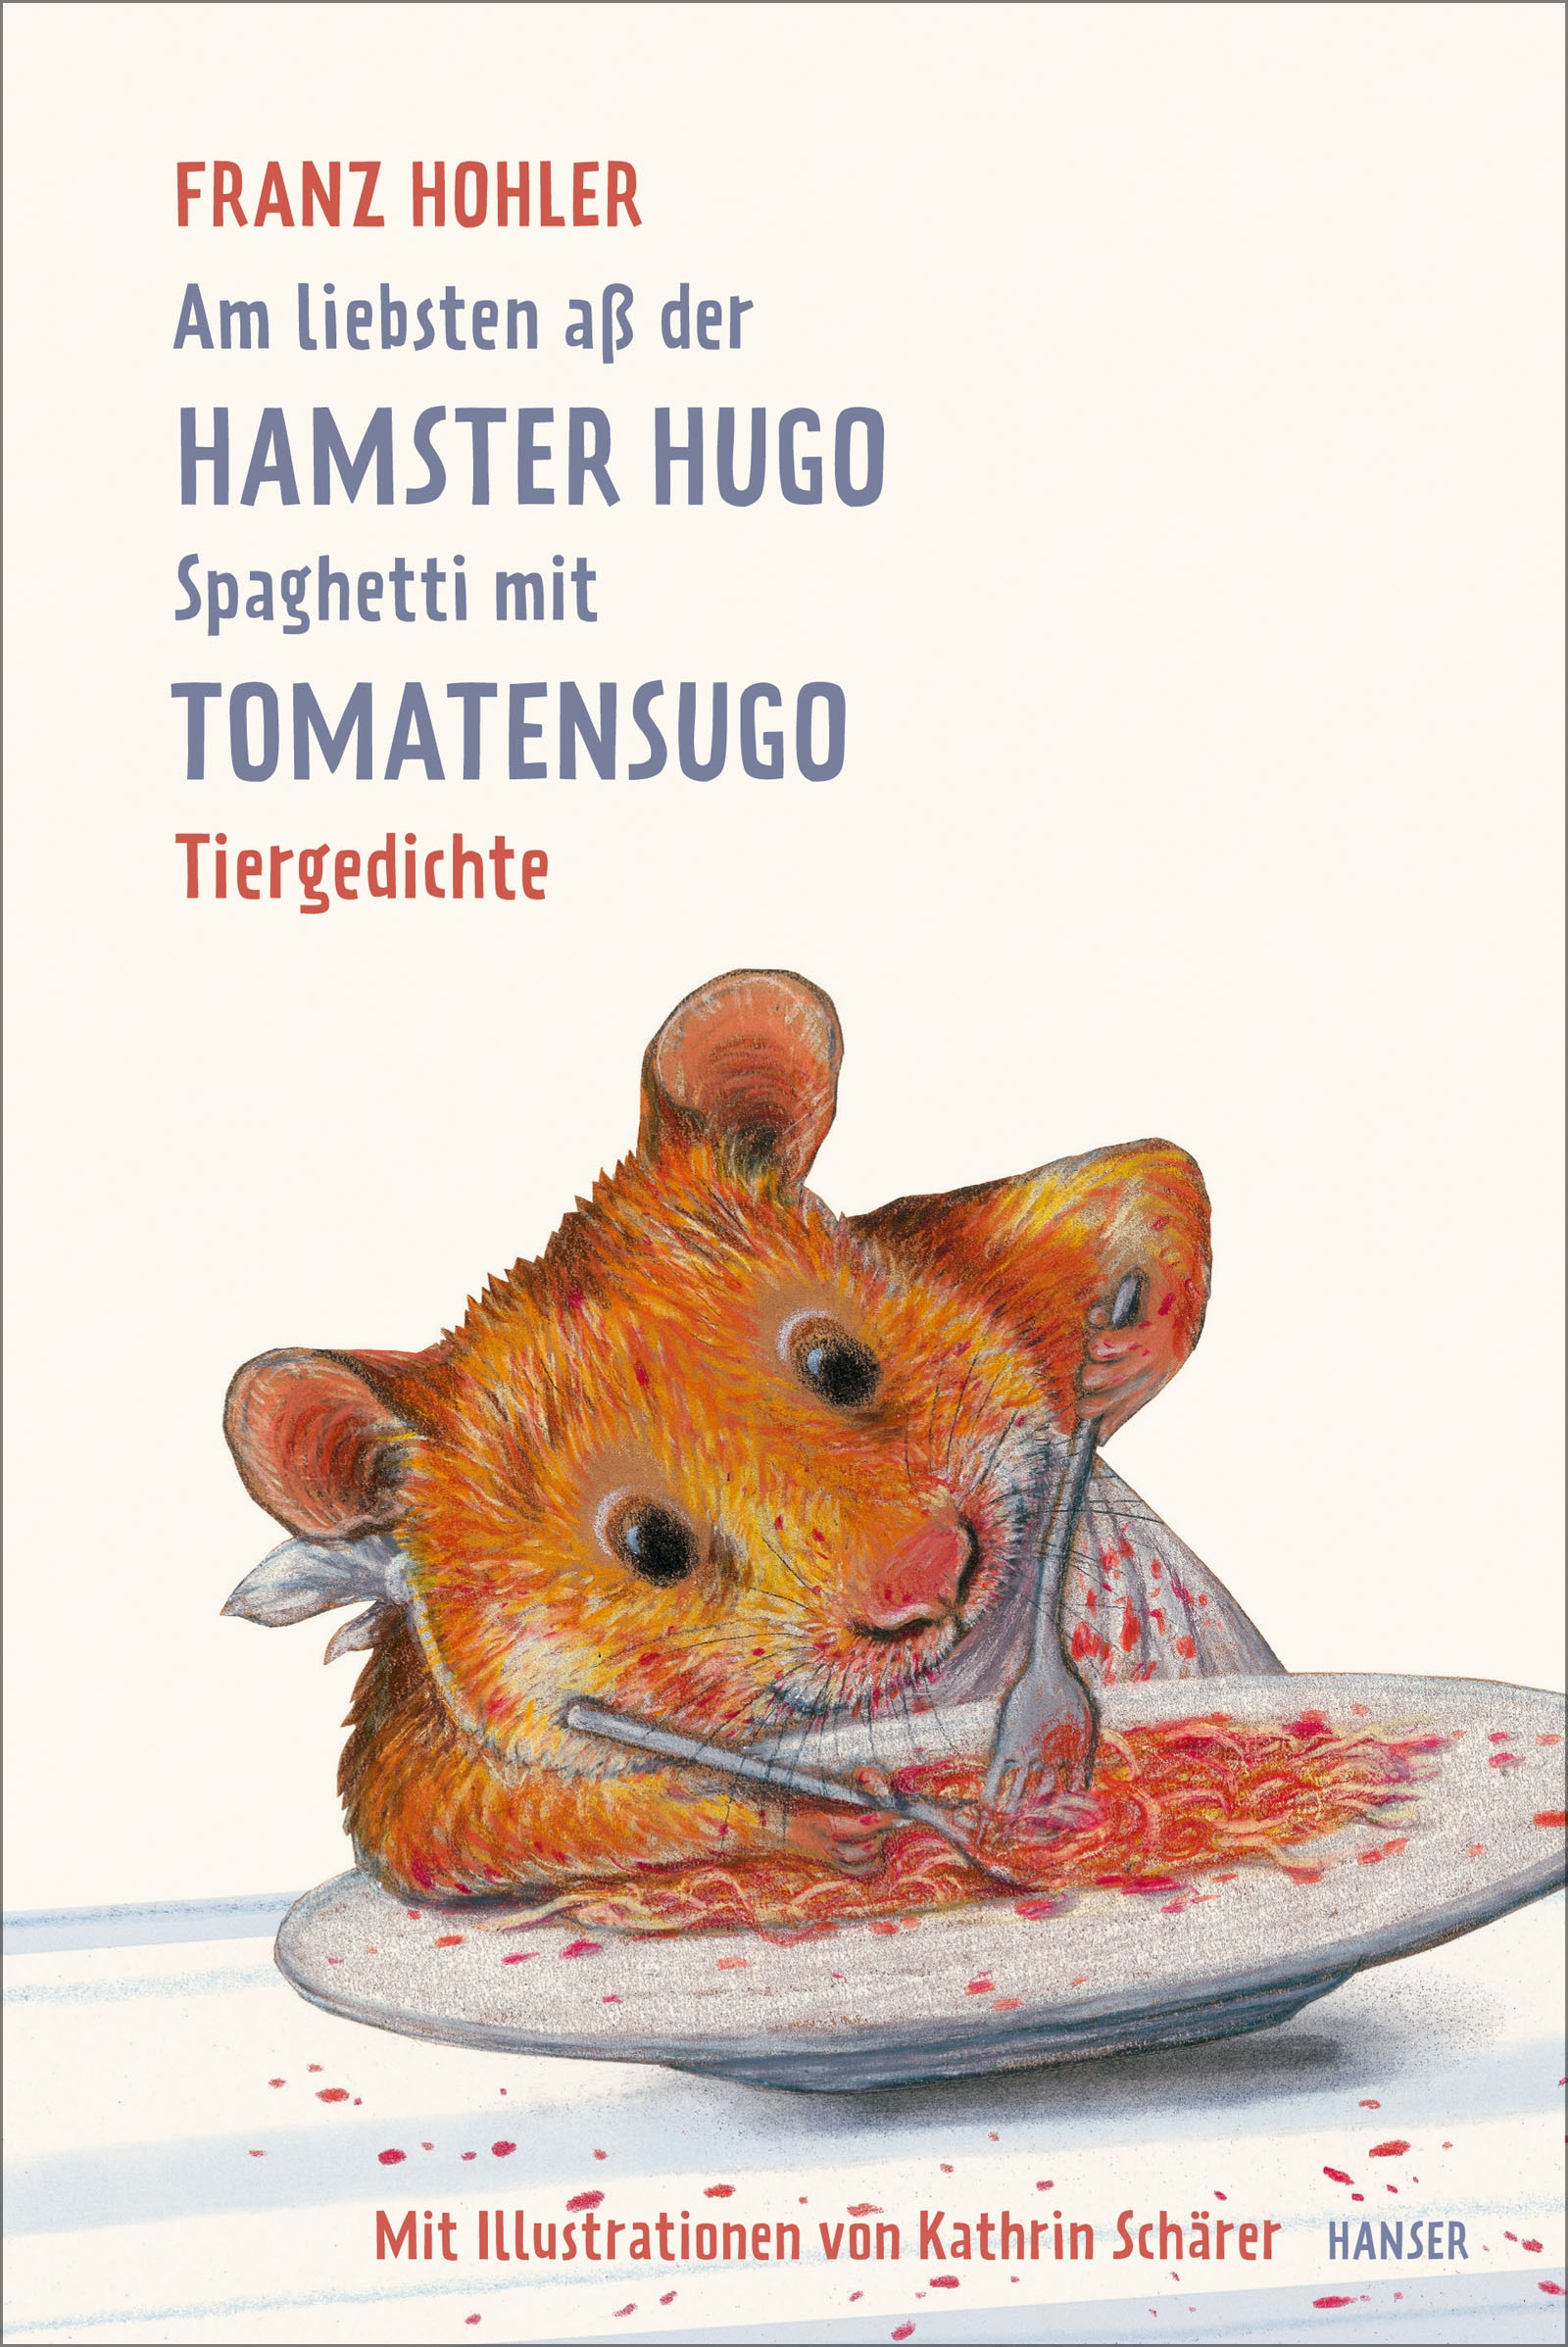 The Favorite Food of Hamster Hugo was Spaghetti with Tomato Sugo